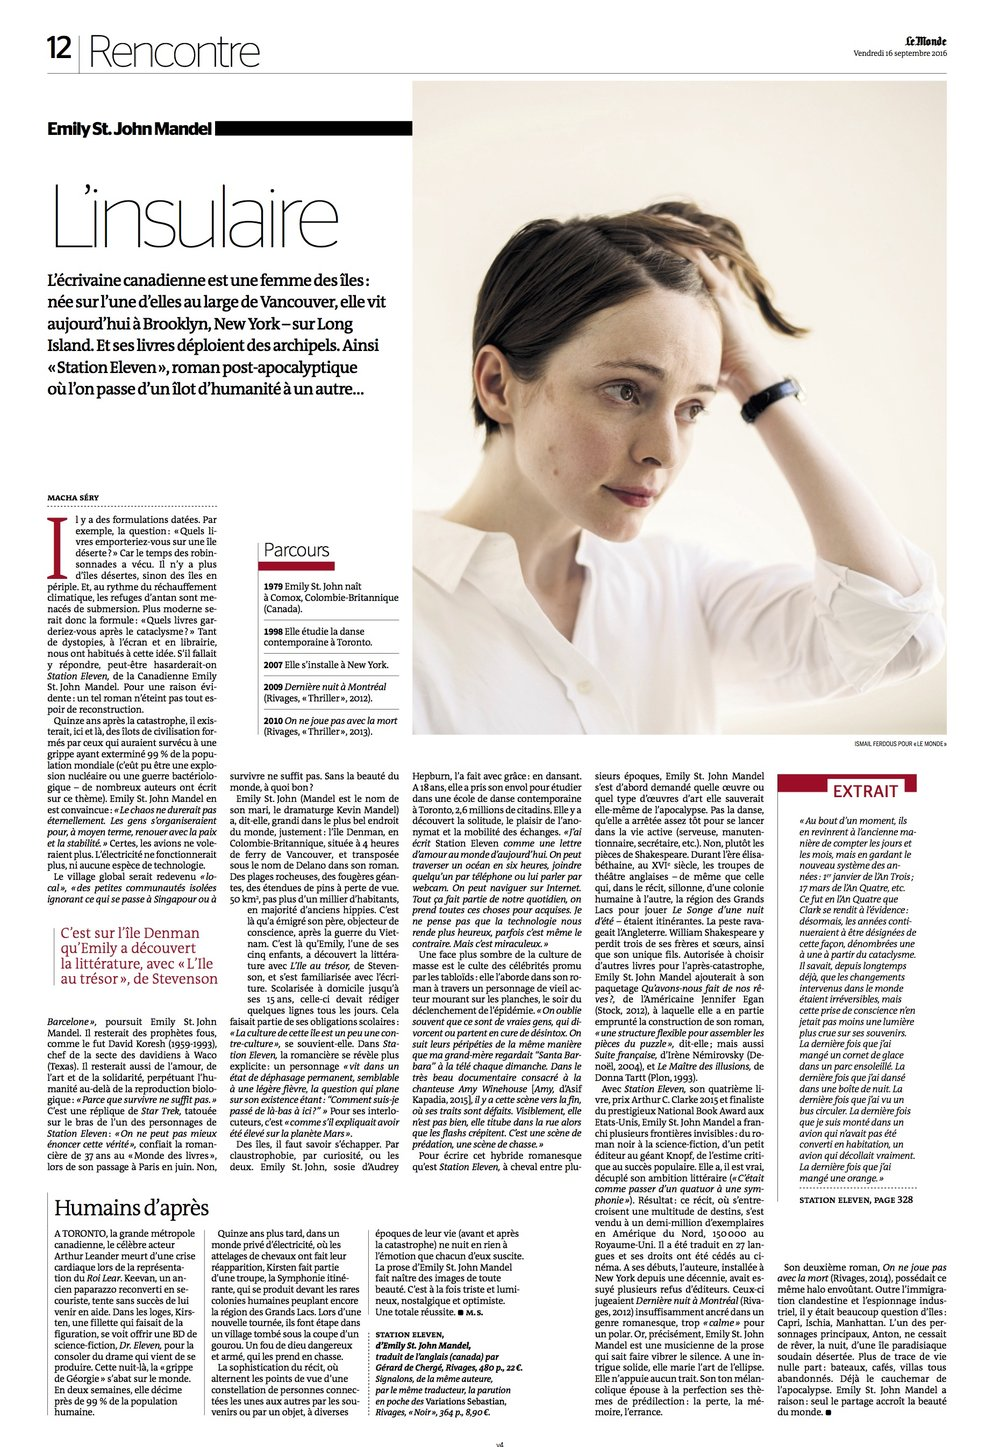 Emily St. John Mandel- Published in Le Monde